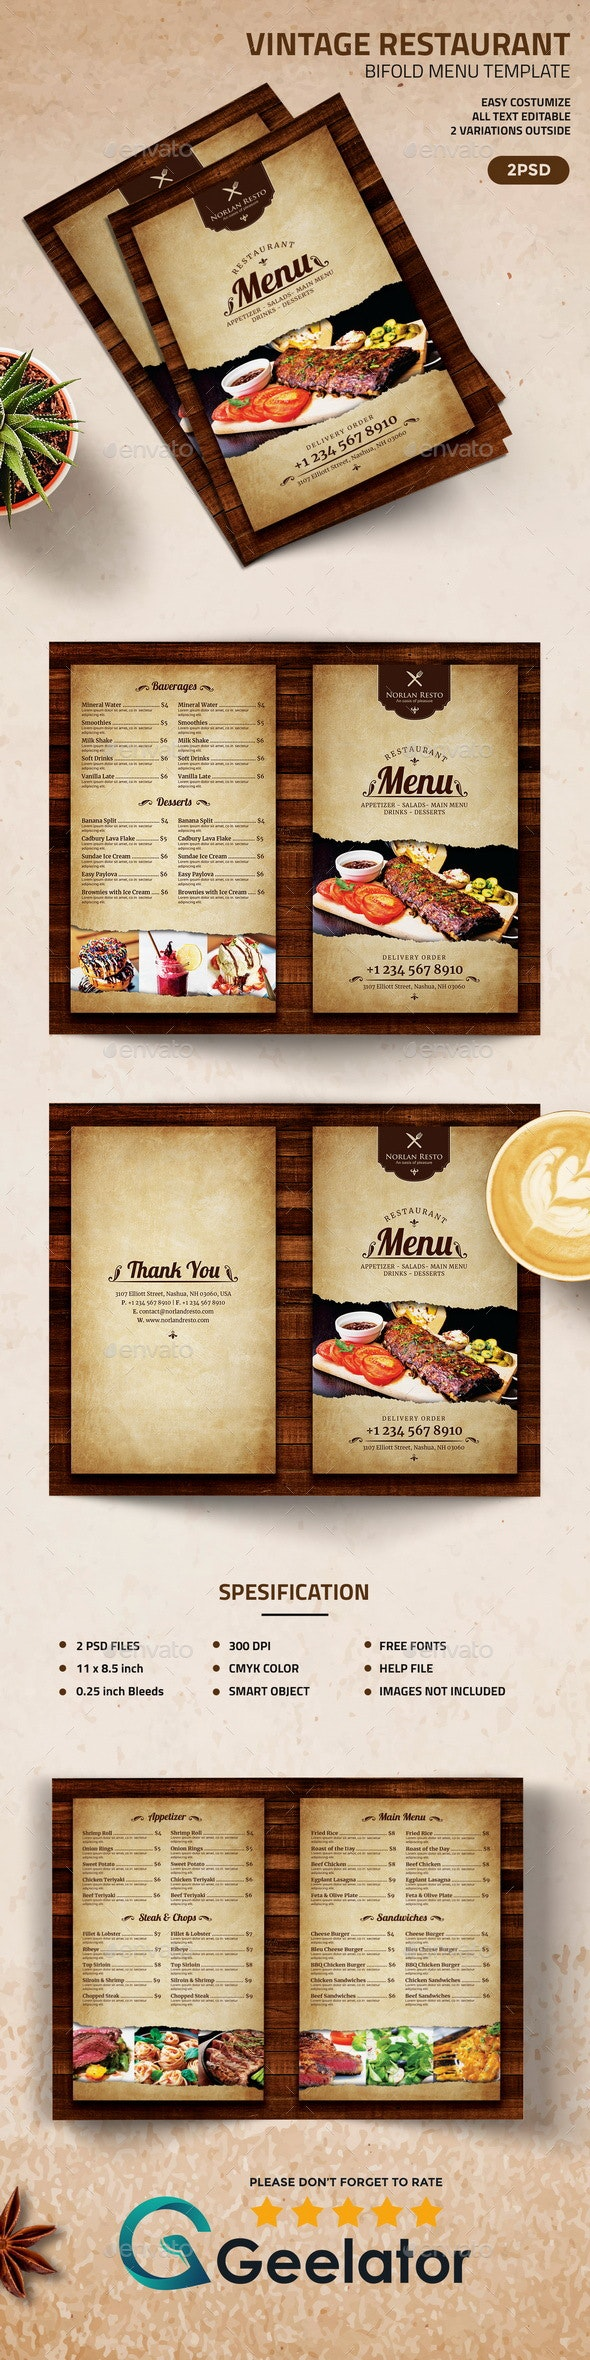 Vintage Restaurant  BiFold Menu Template - Food Menus Print Templates